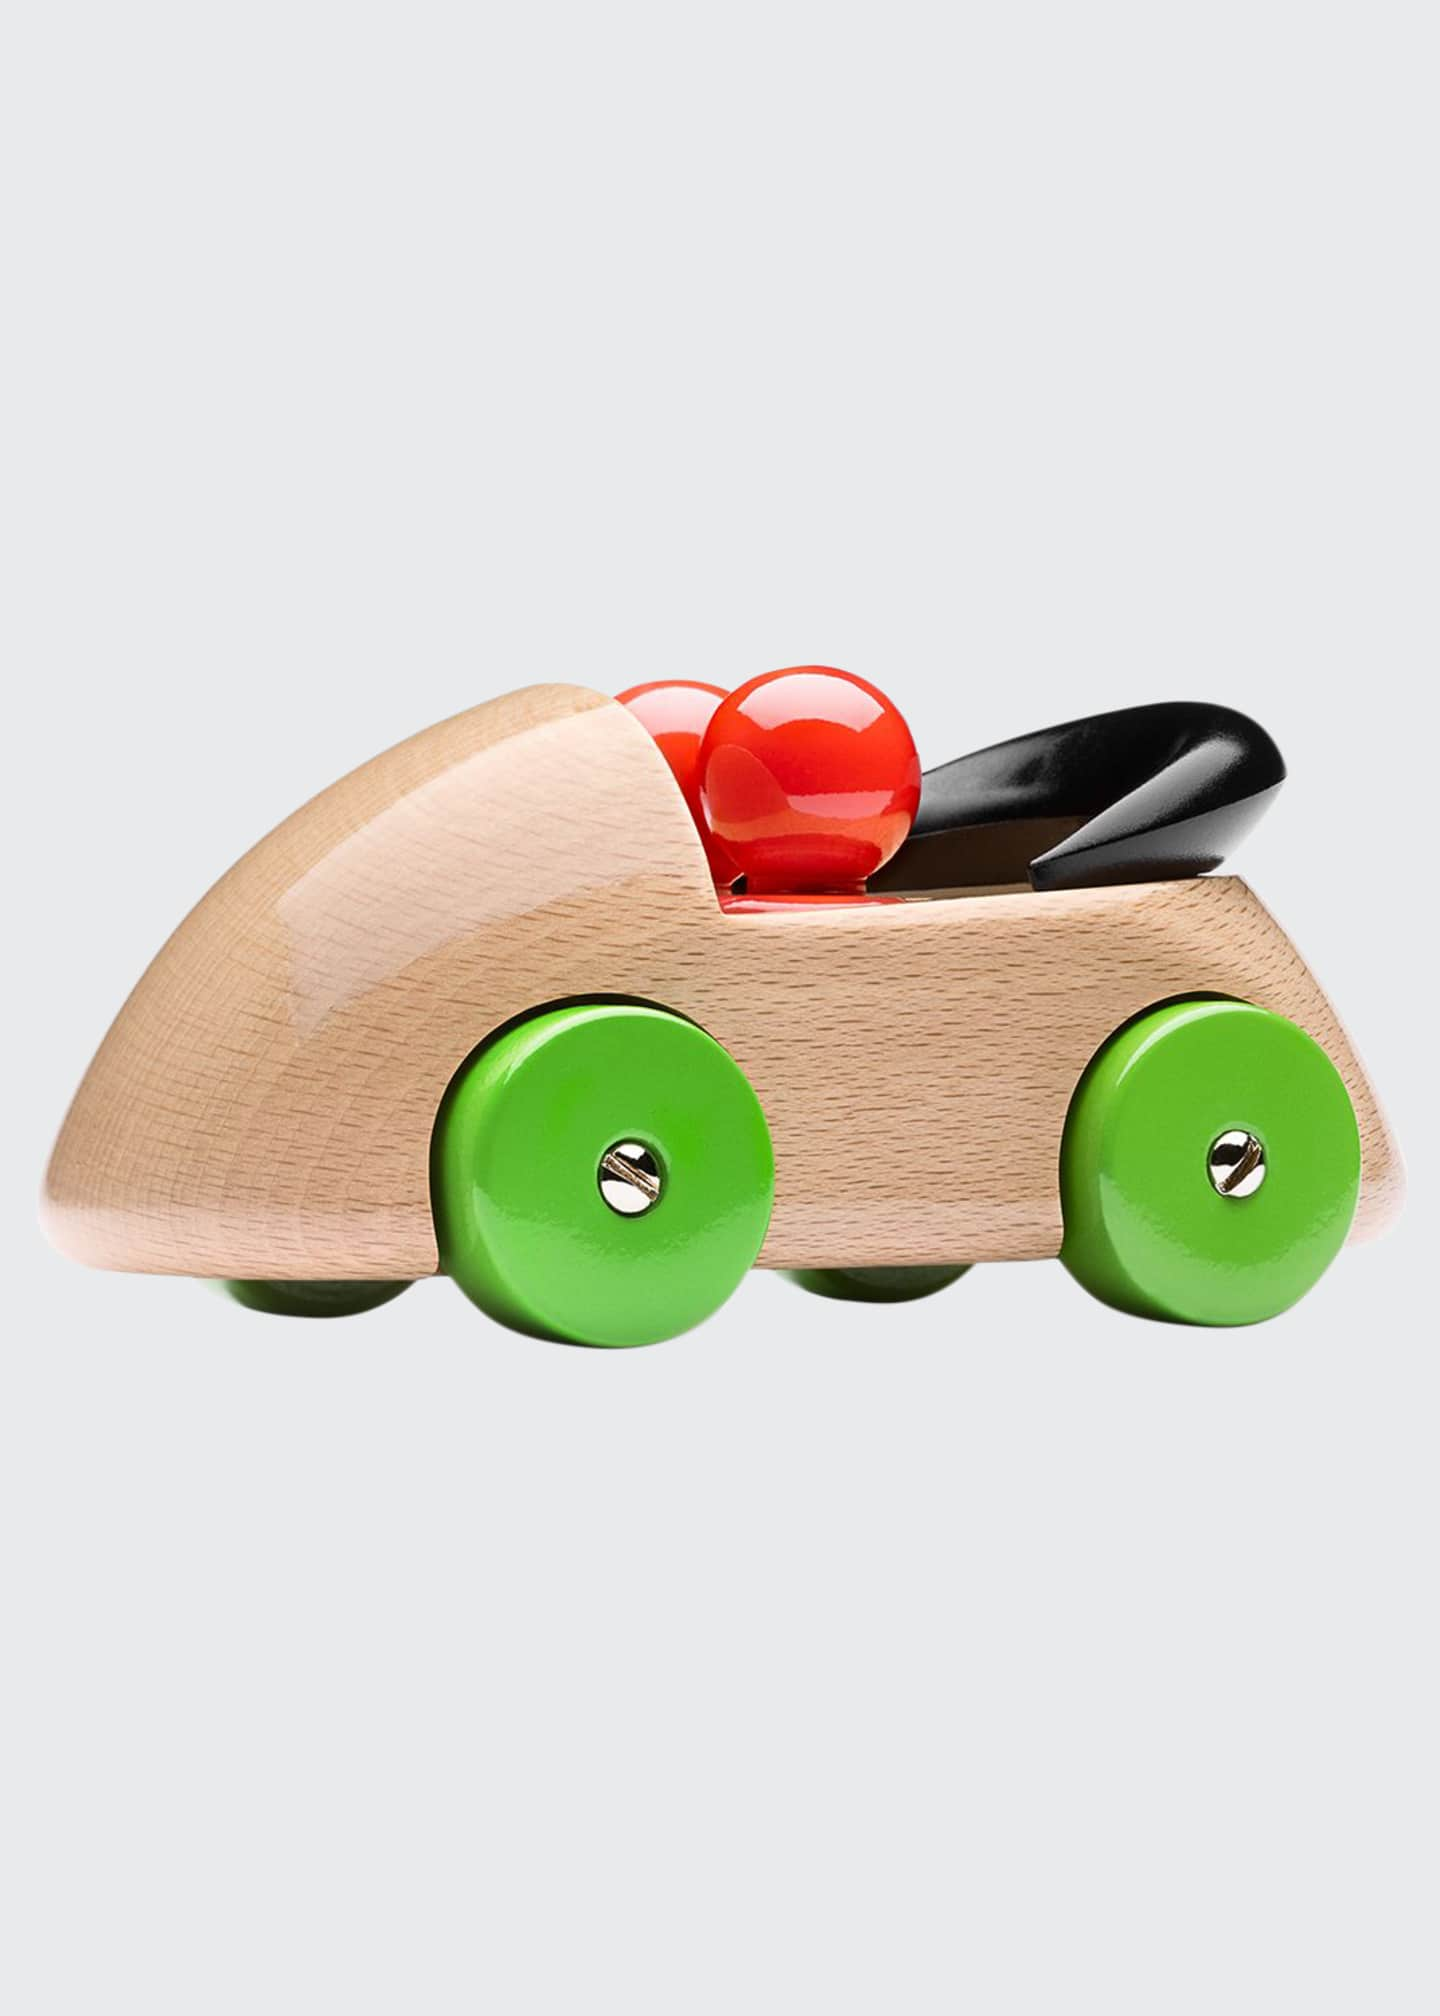 Cab Streamliner Wooden Toy Car